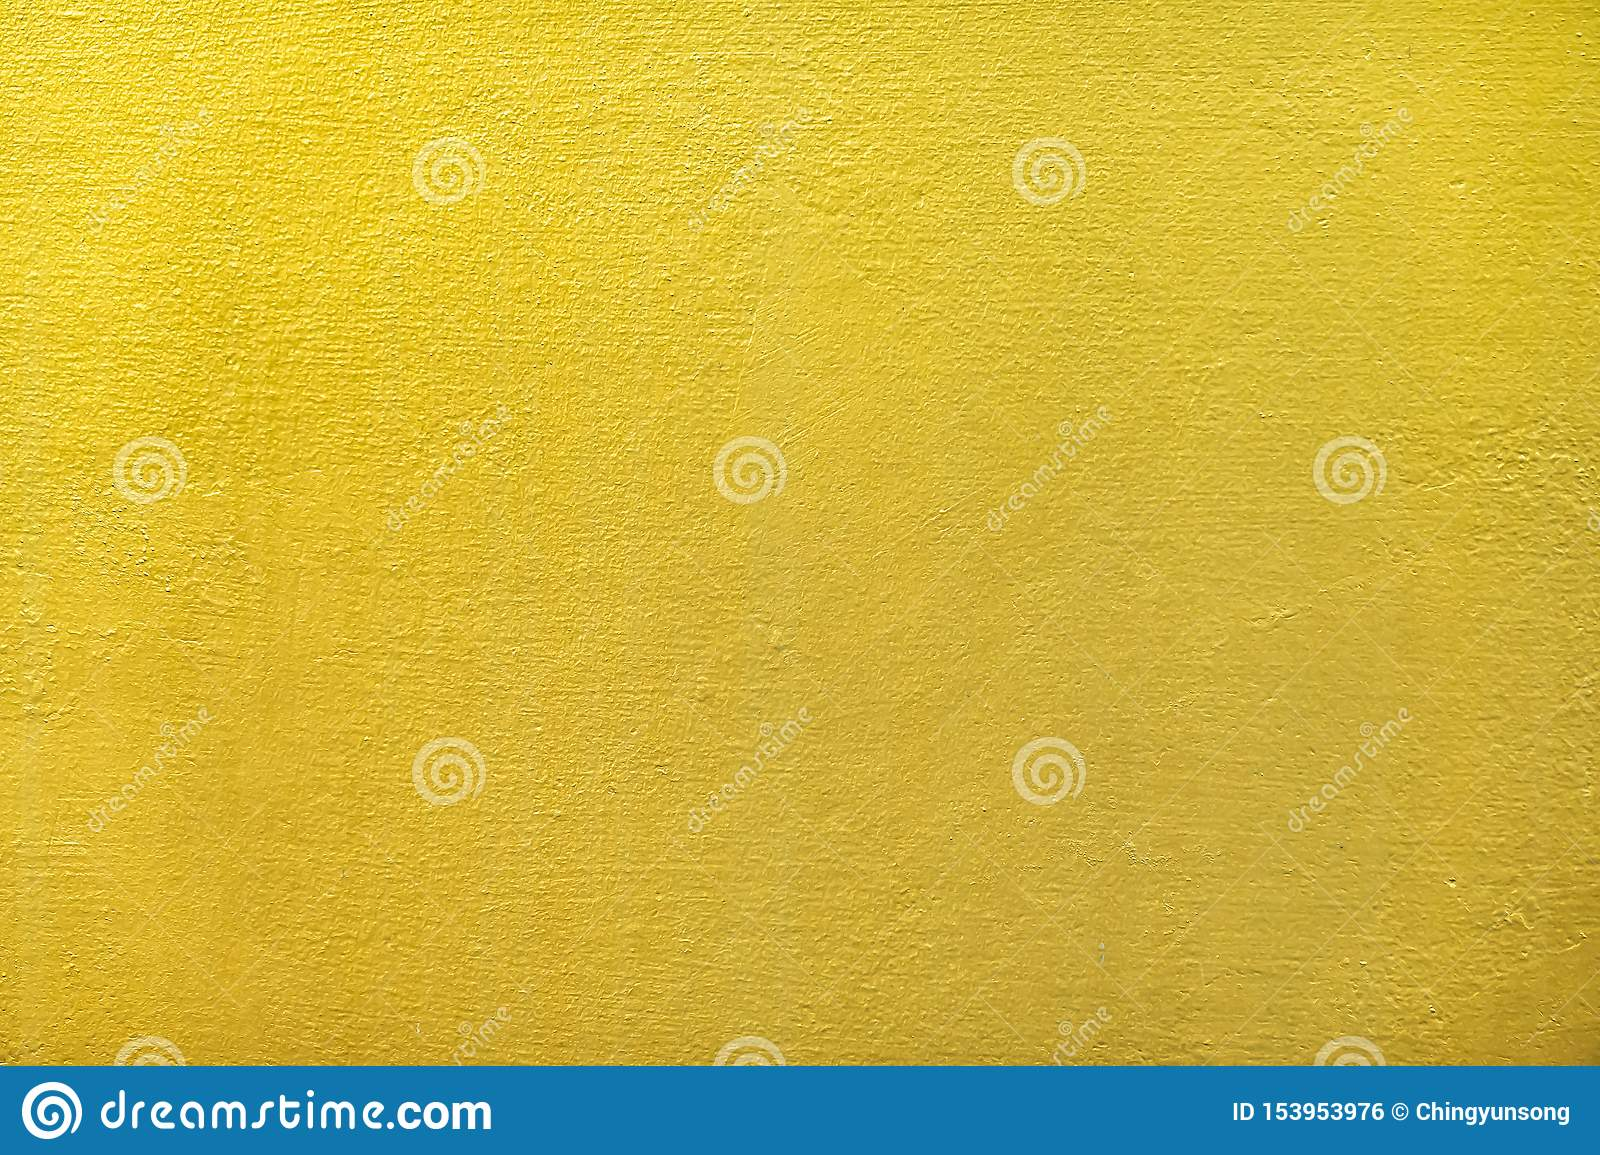 Gold or foil wall paint for the abstract background and texture